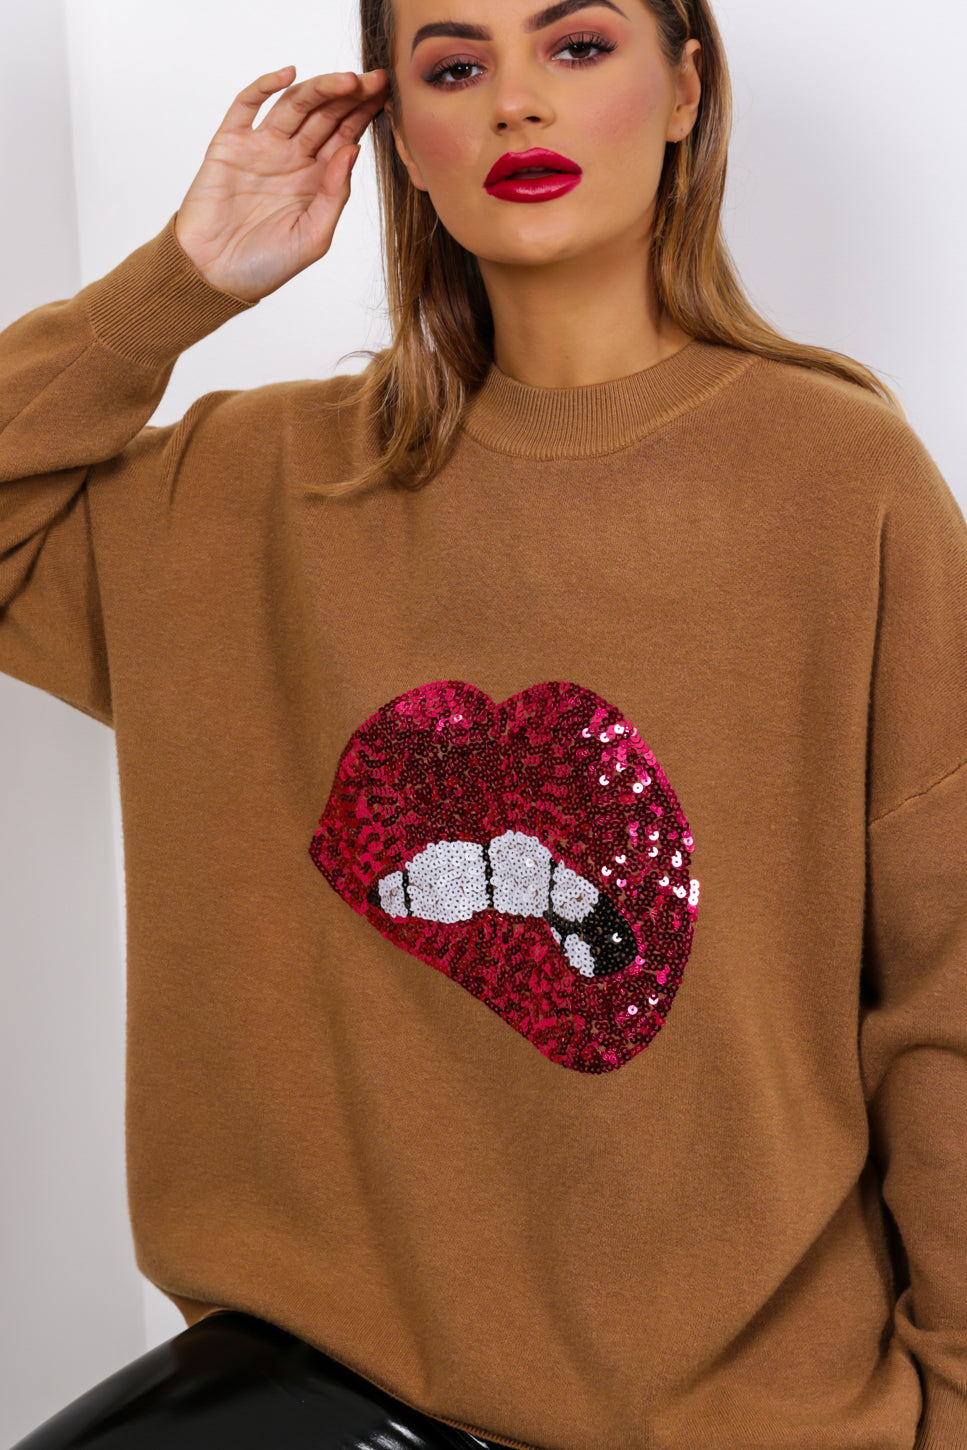 https://cdn.shopify.com/s/files/1/0062/6661/7925/files/product-video-when_you_kiss_me-jumper-in-brown.mp4?5932